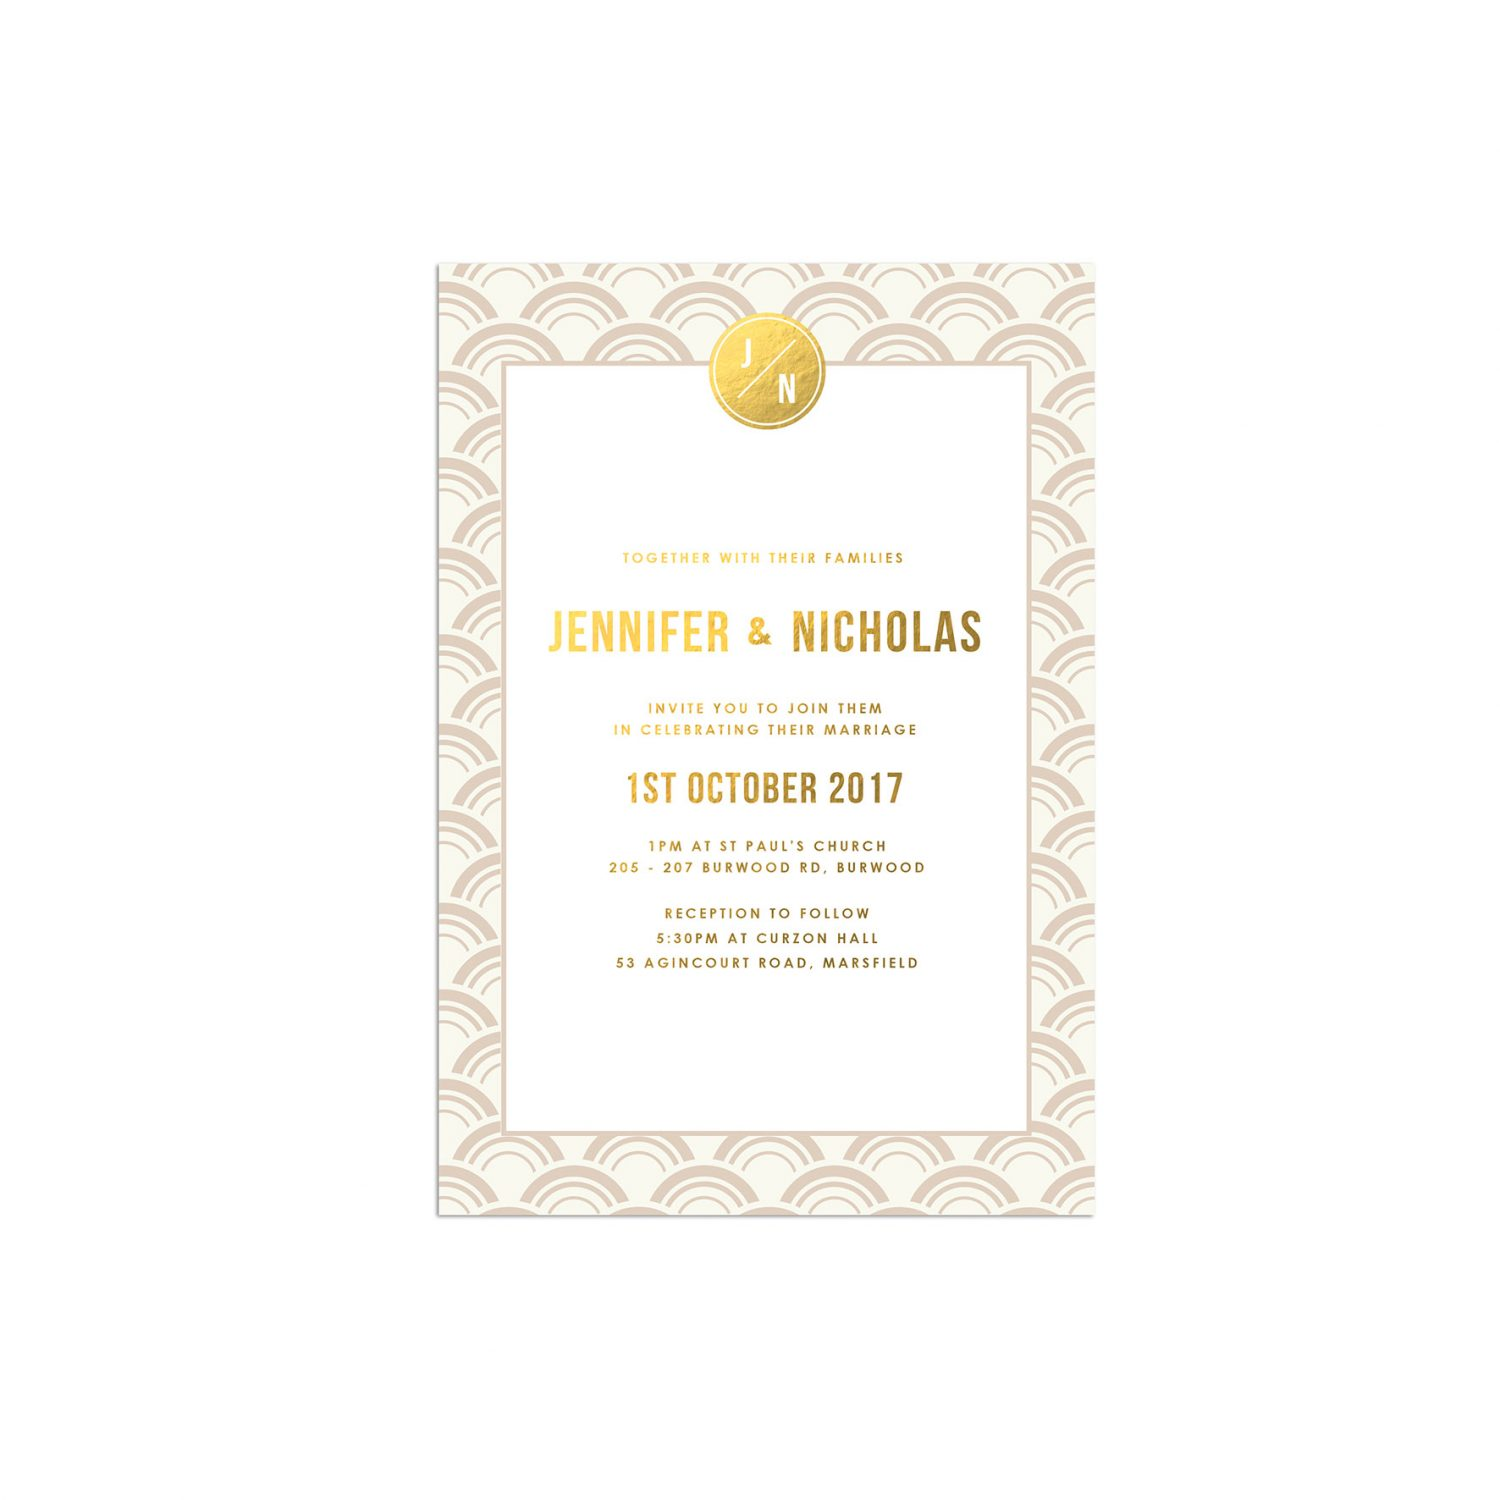 Art Deco Wedding Invitations.Ivory And Gold Foil Art Deco Wedding Invitations